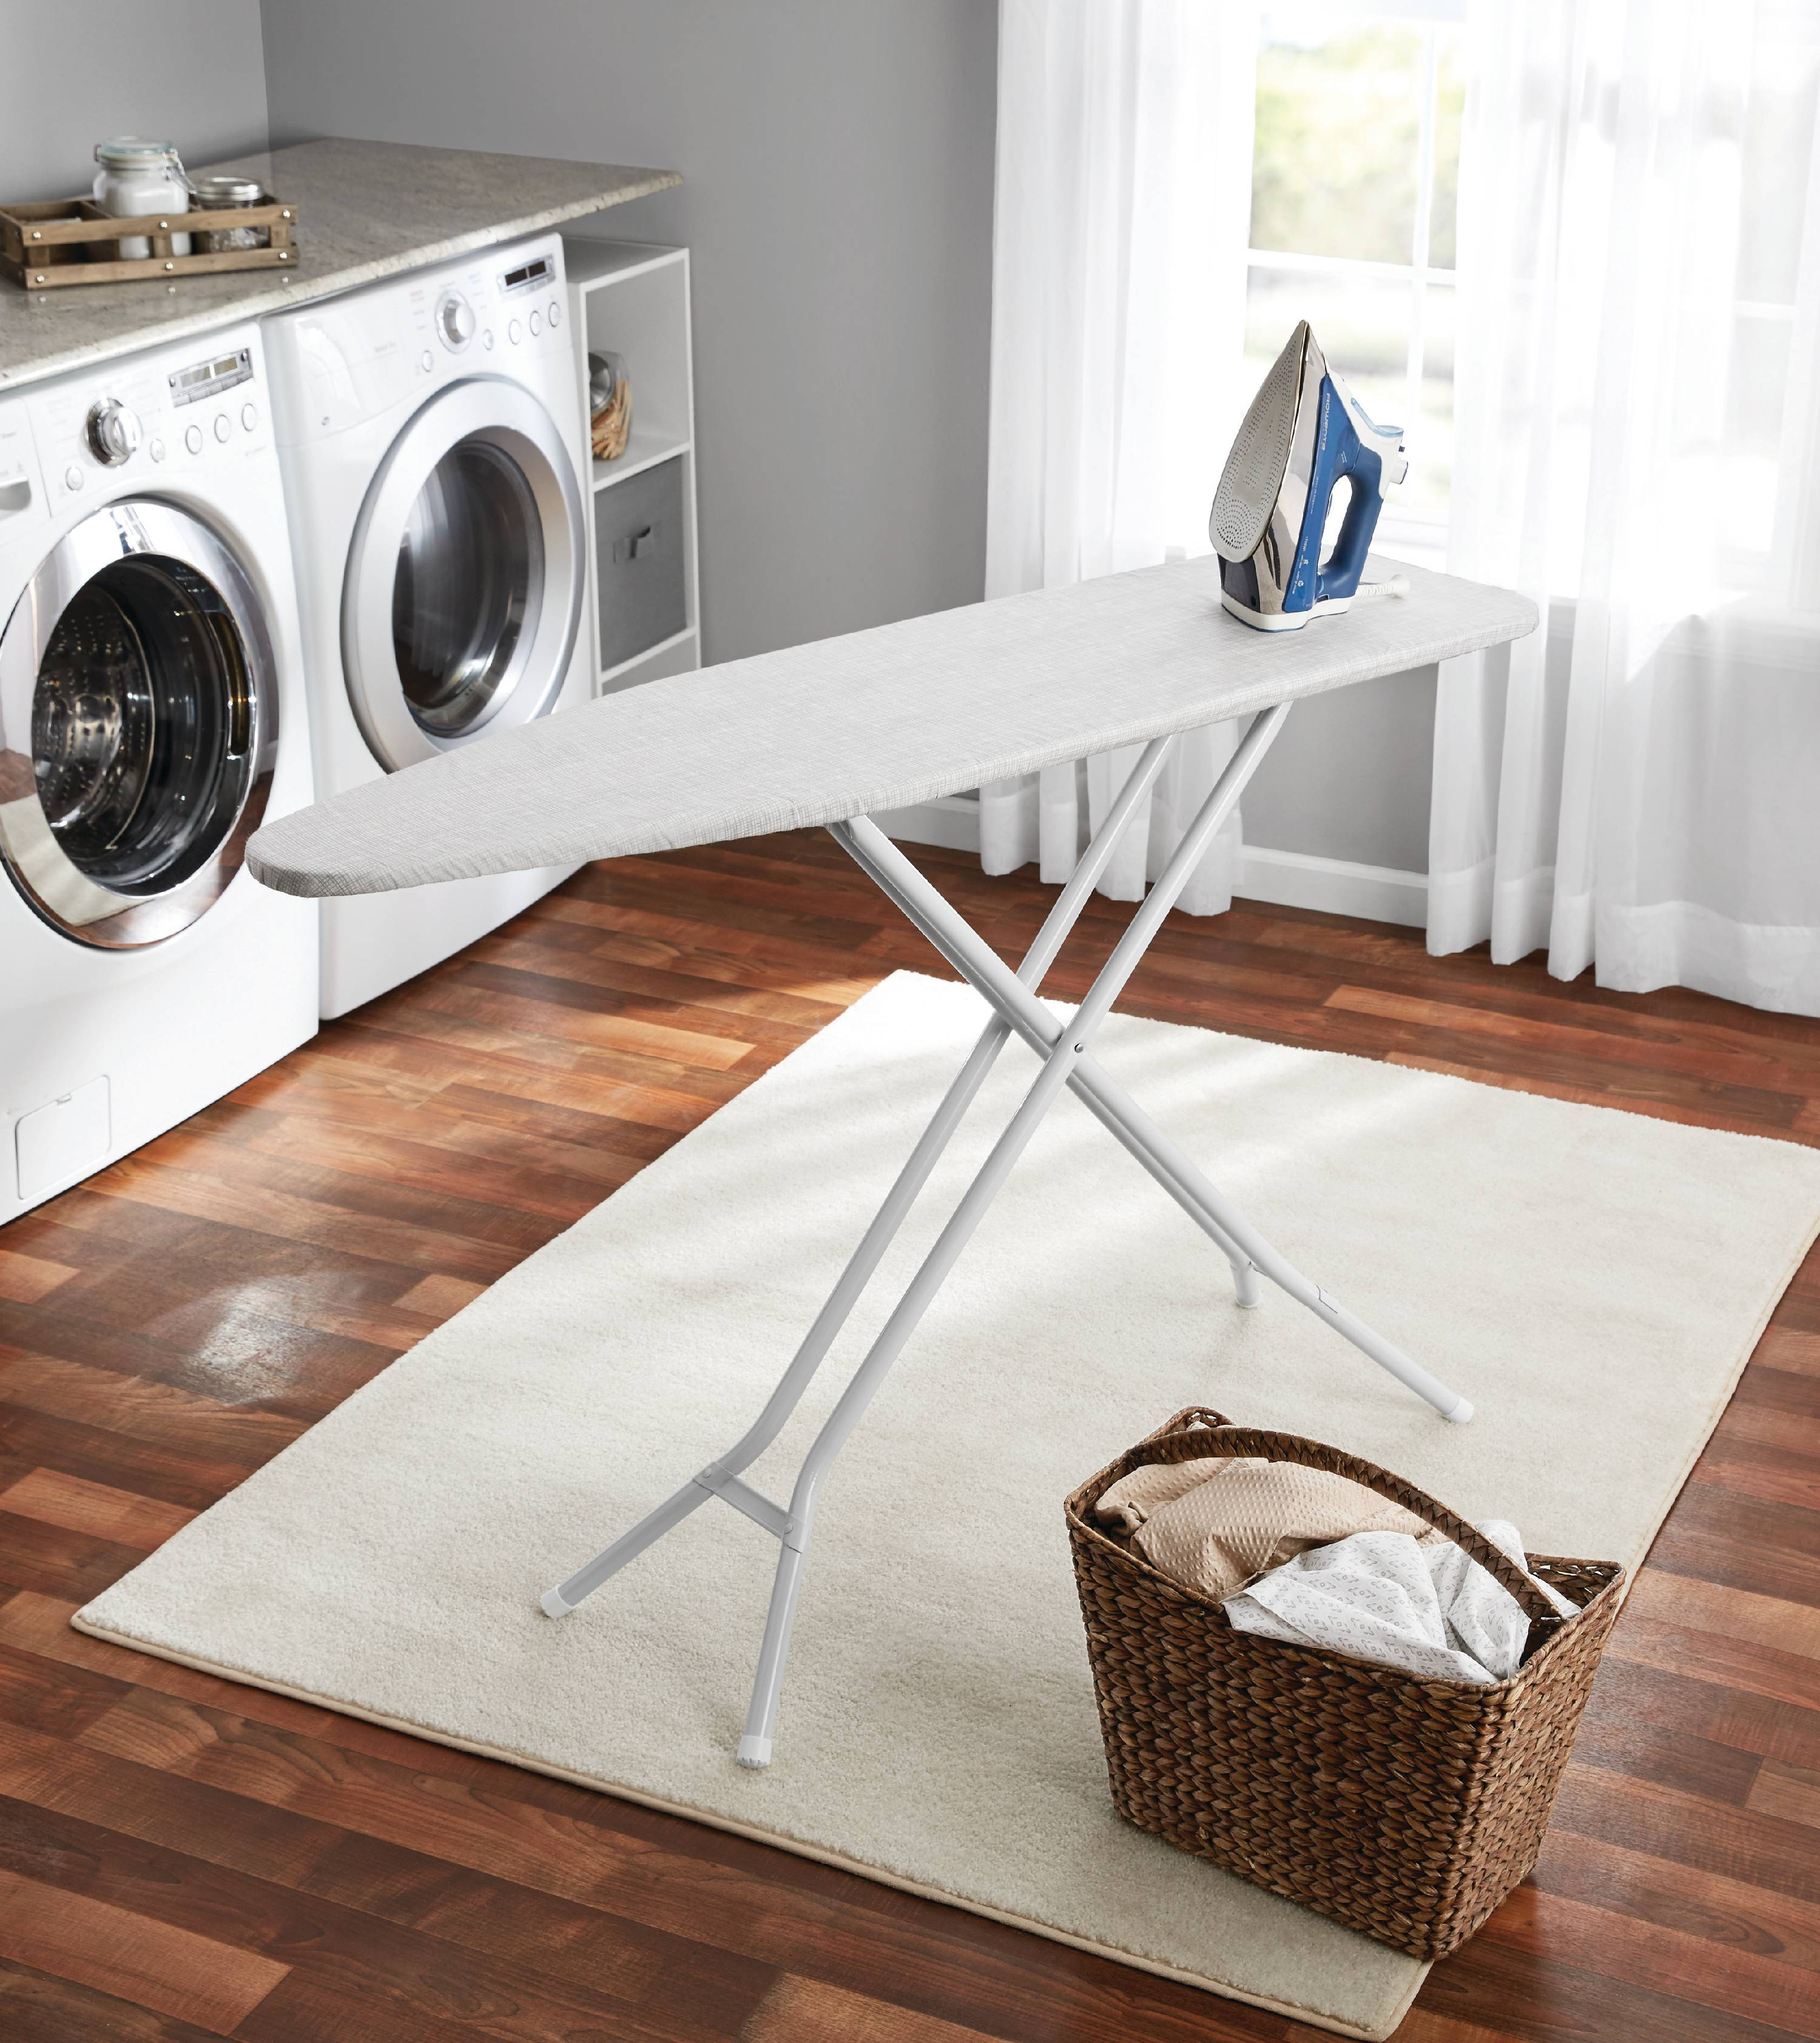 Mainstays 4 Leg Ironing Board Gray Cotton Cover Walmartcom